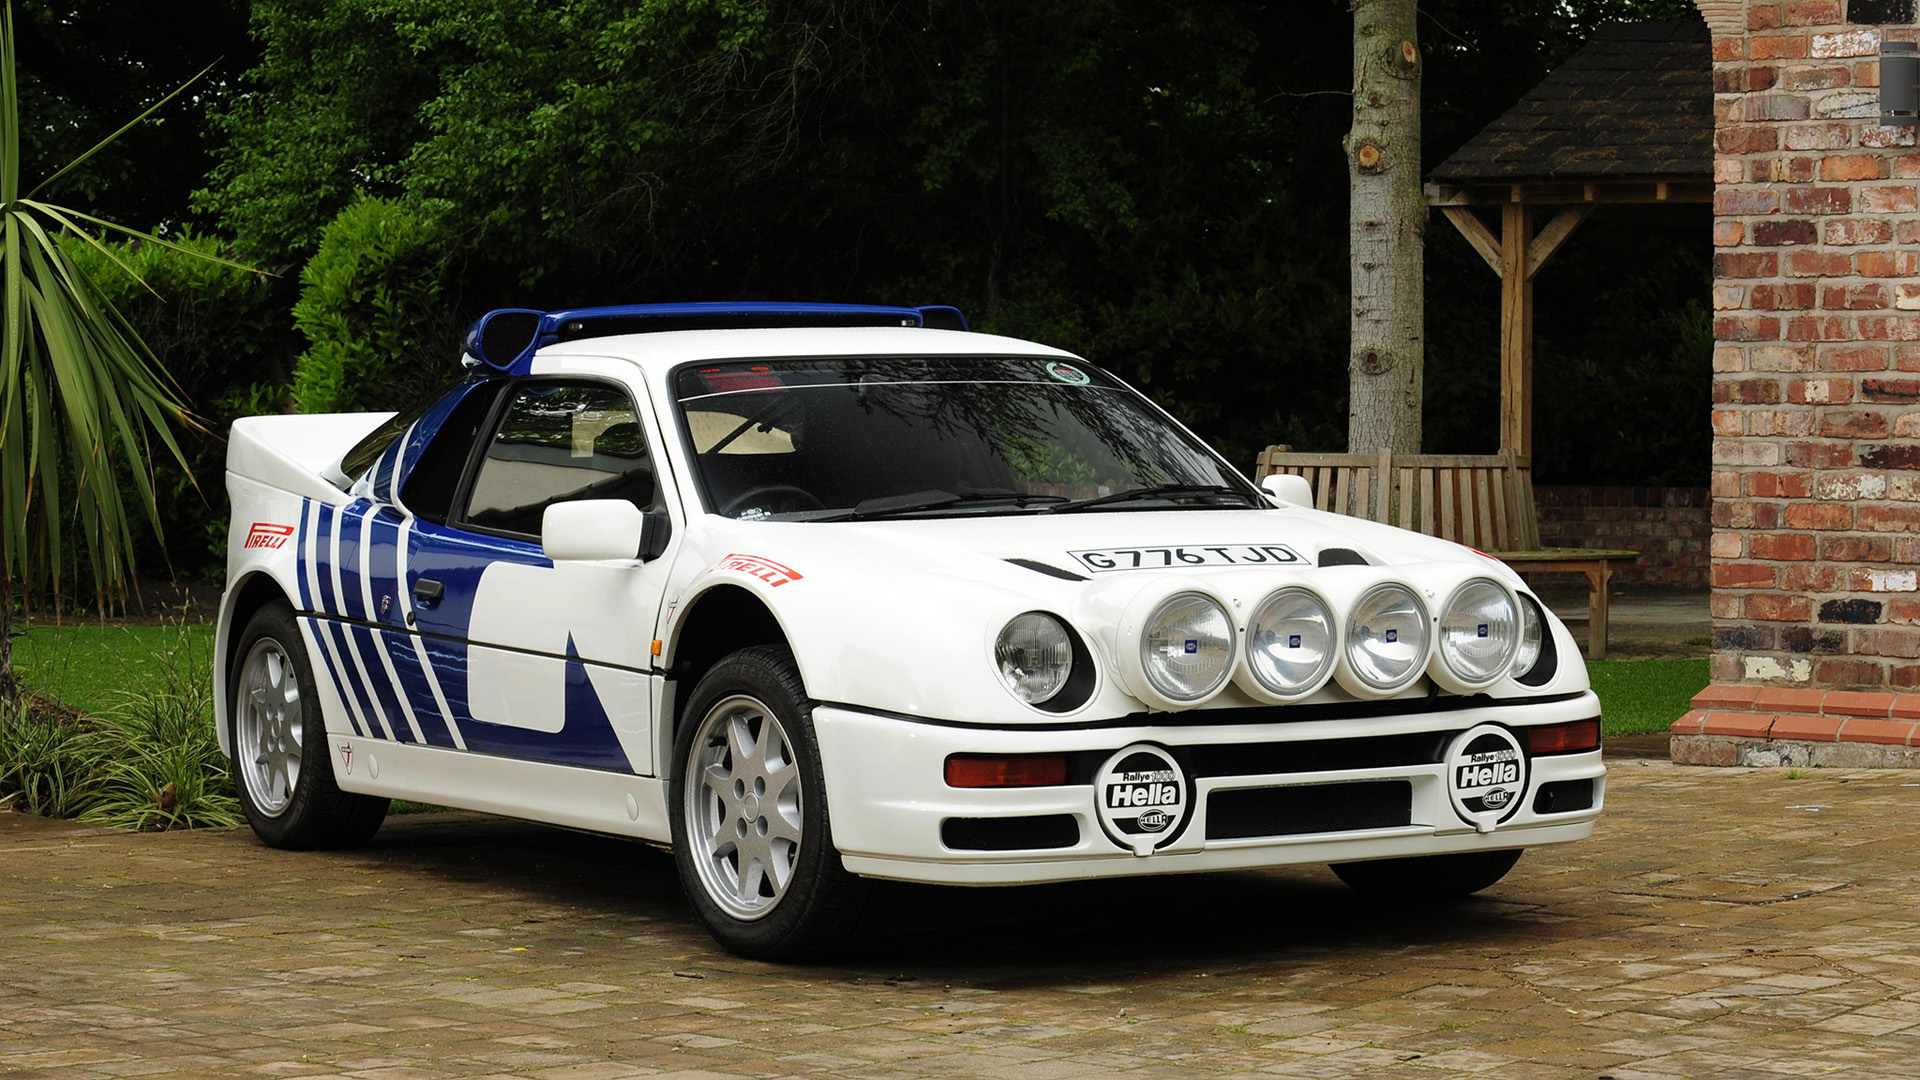 1984 Ford RS200 | Ford Warszawa